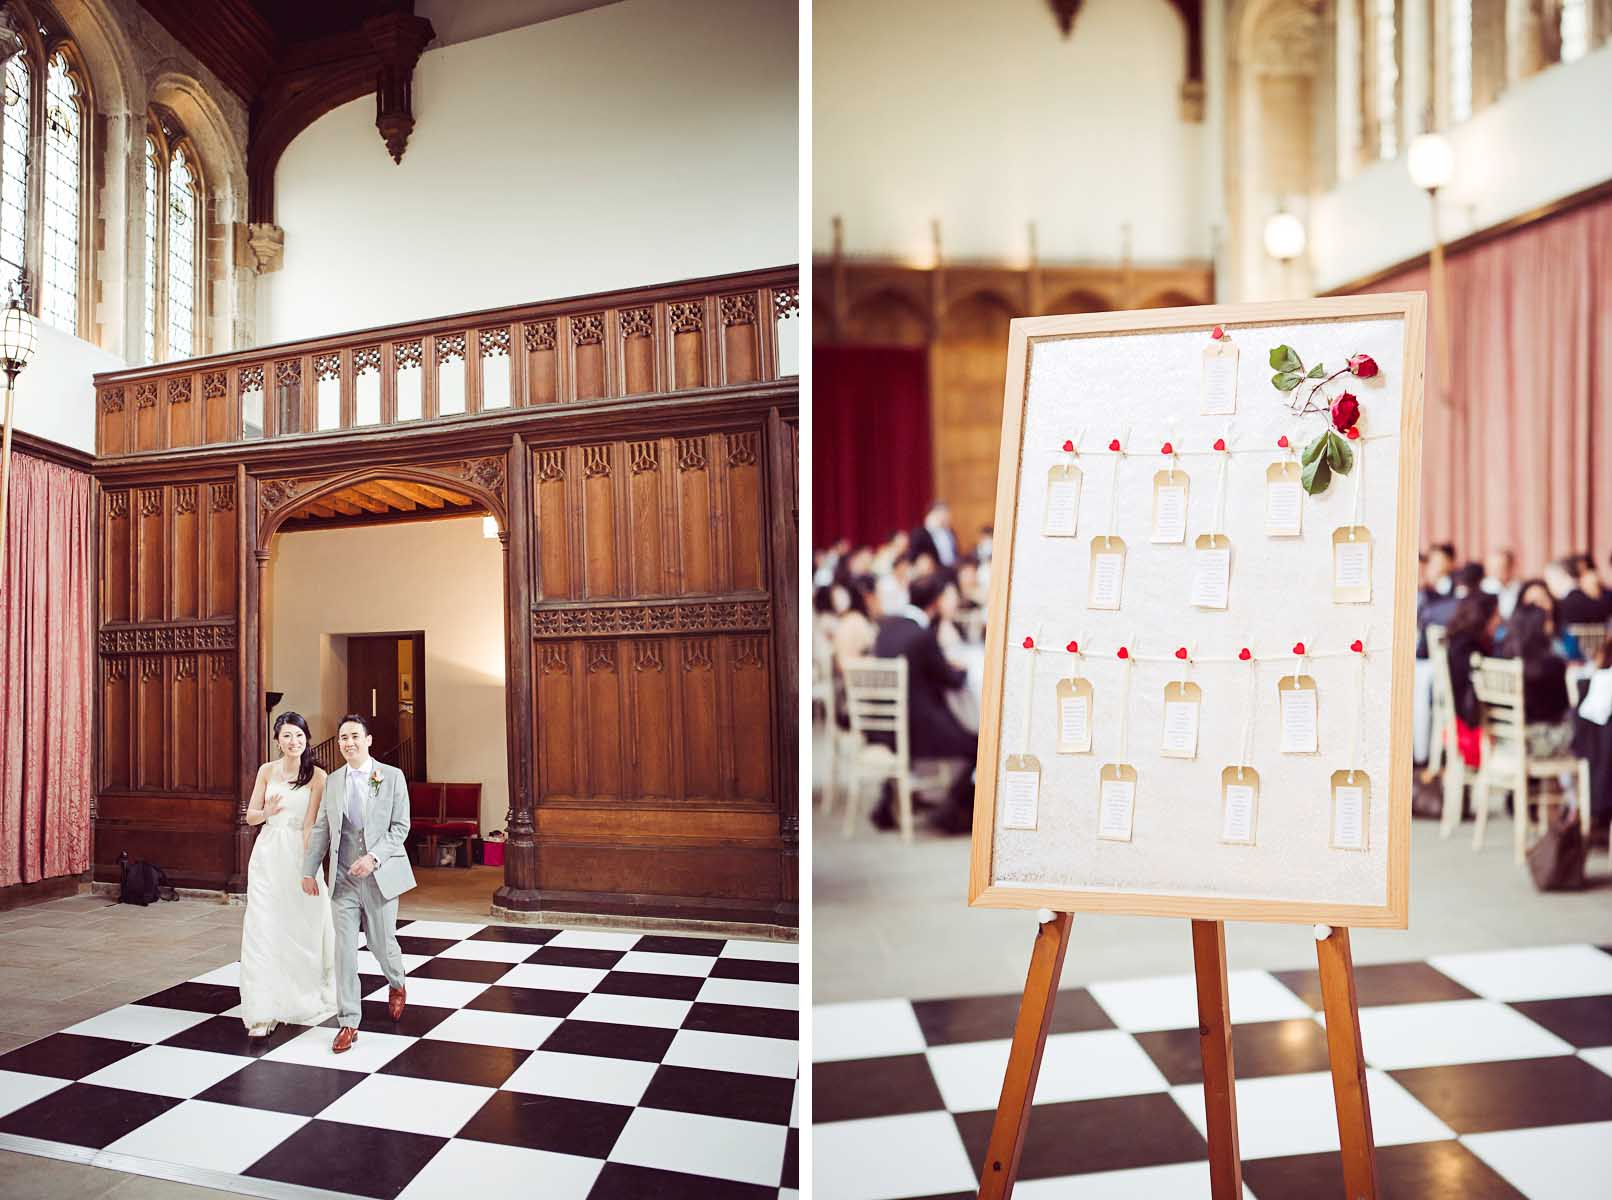 Guests table plan Eltham Palace